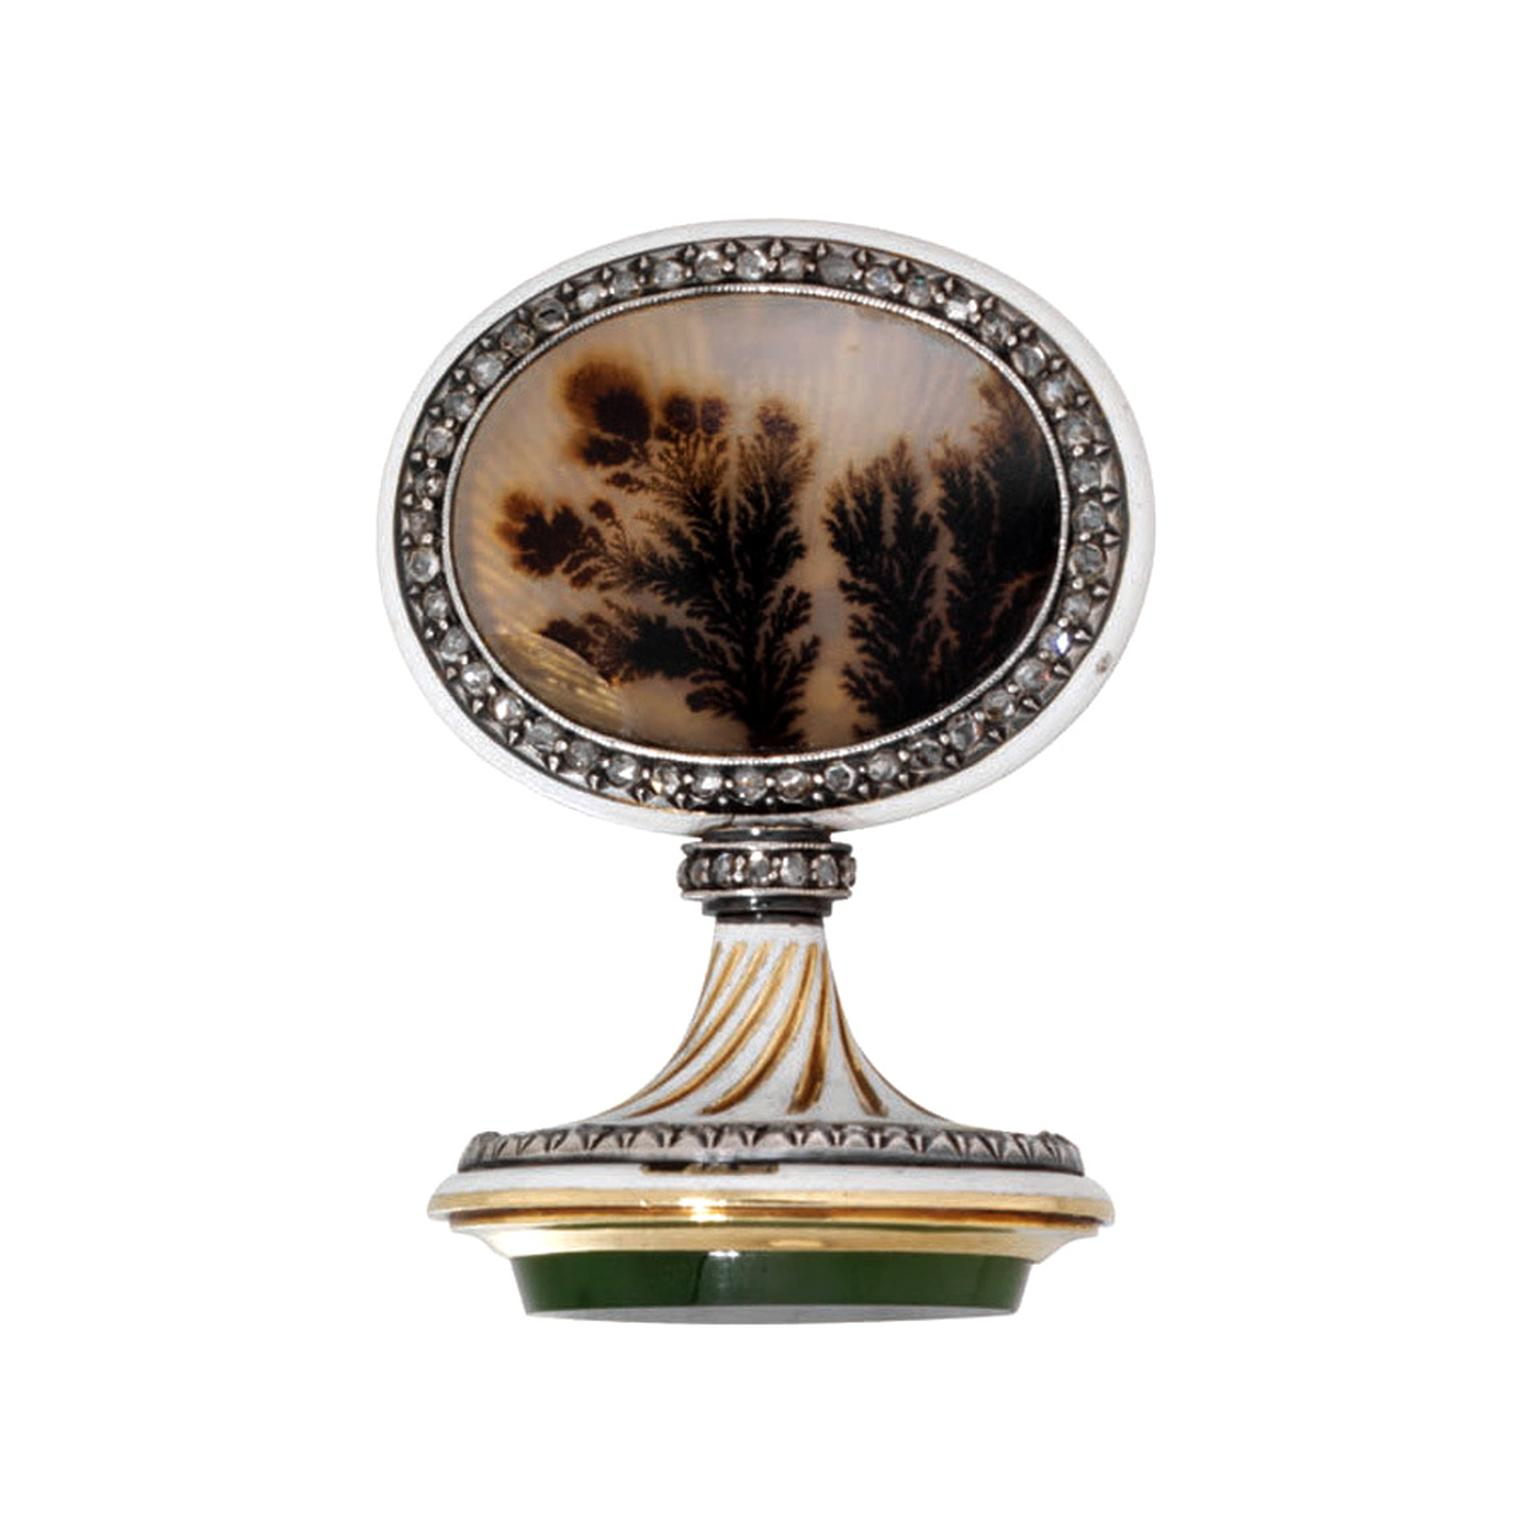 Bentley skinner faberge seal for Bentley and skinner jewelry